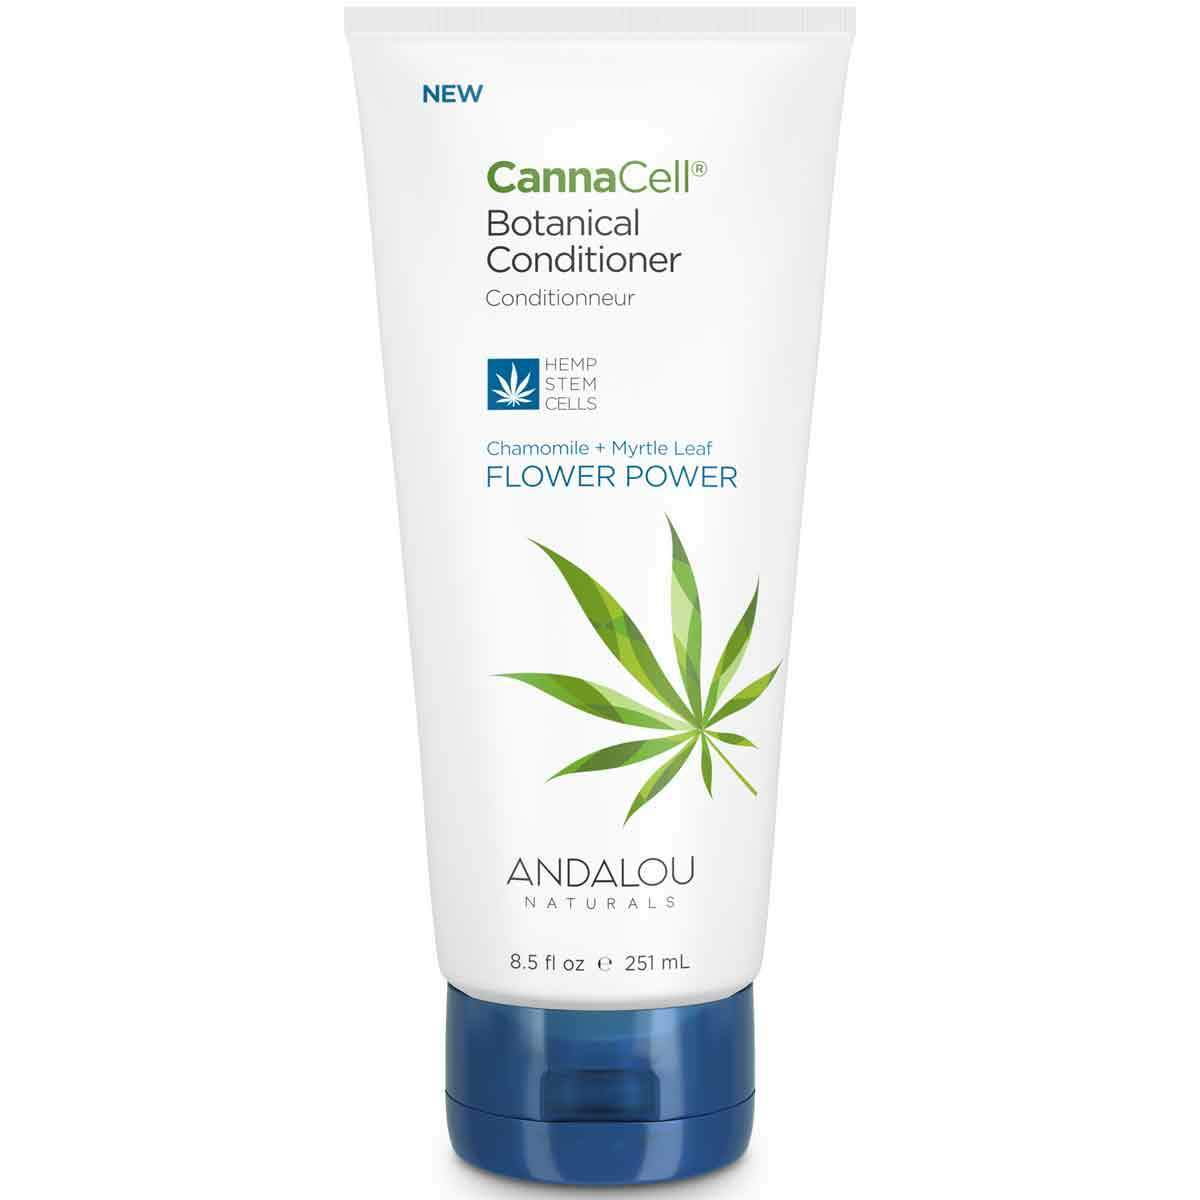 Personal Care - Andalou Naturals - CannaCell® Botanical Conditioner (Flower Power), 251mL